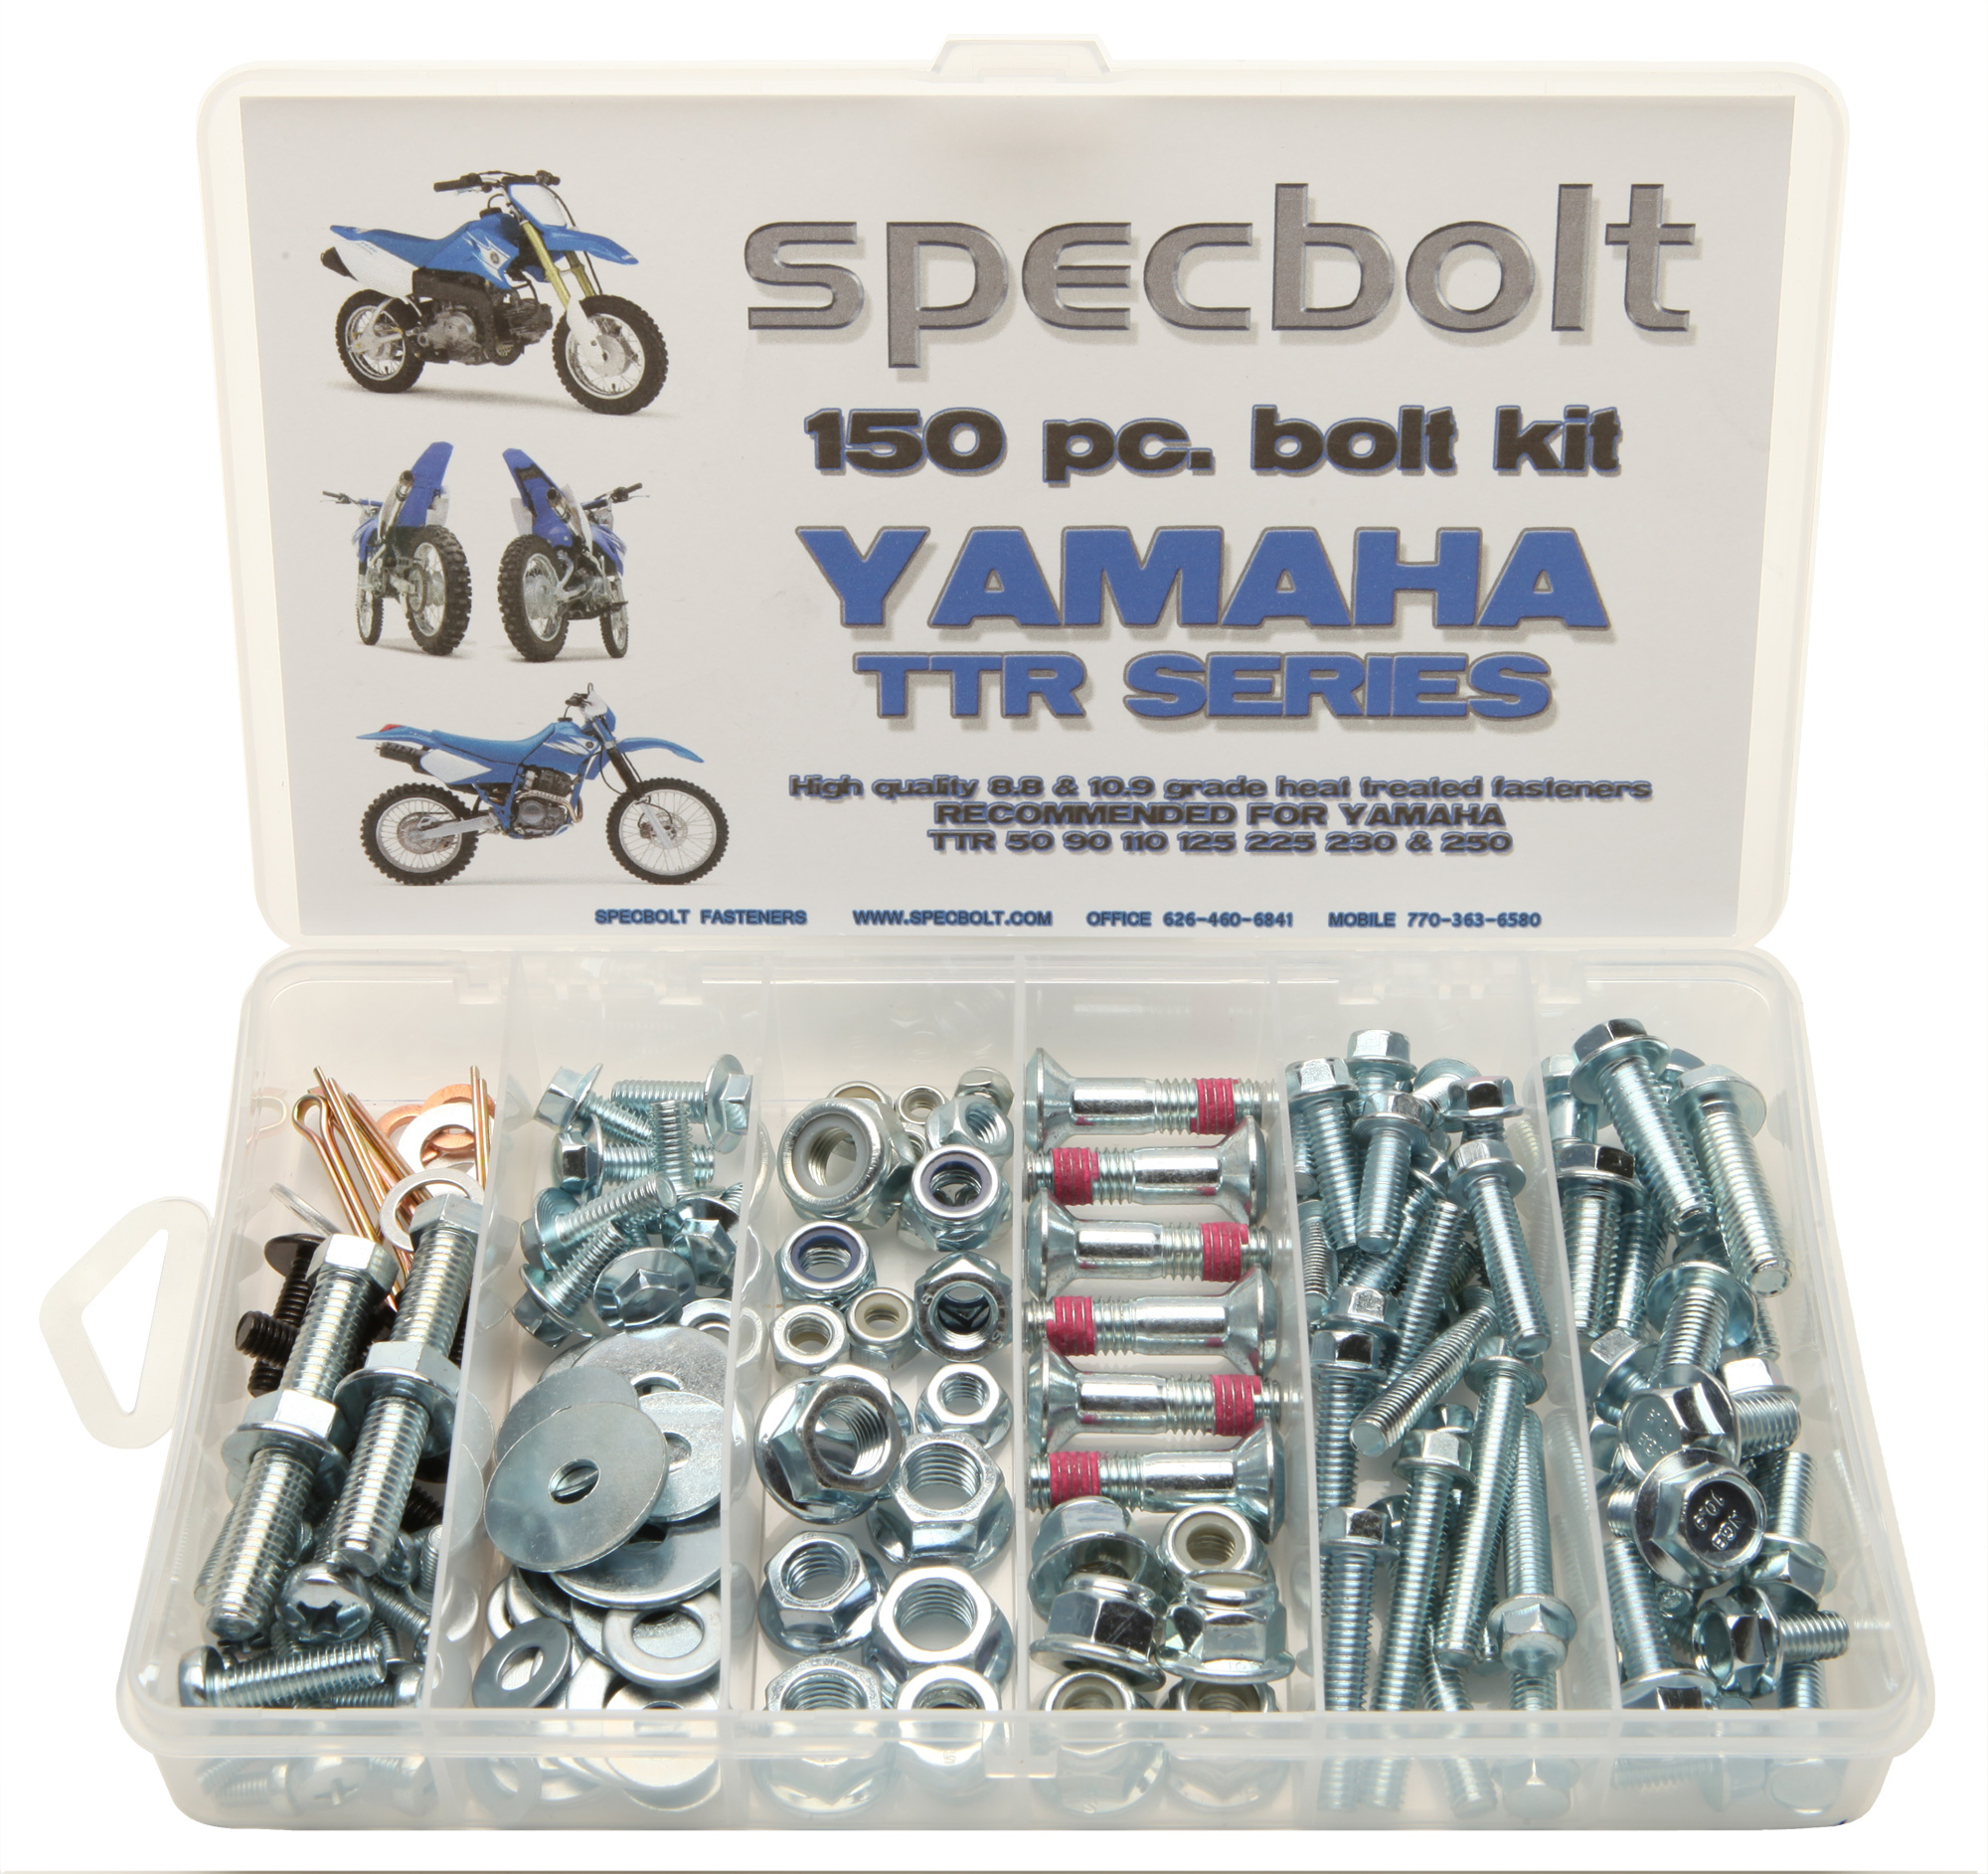 Motorcycle Specbolt Engine Diagram 1299 150pc Yamaha Ttr 50 90 110 125 225 250 4 Stroke Bolt Kit